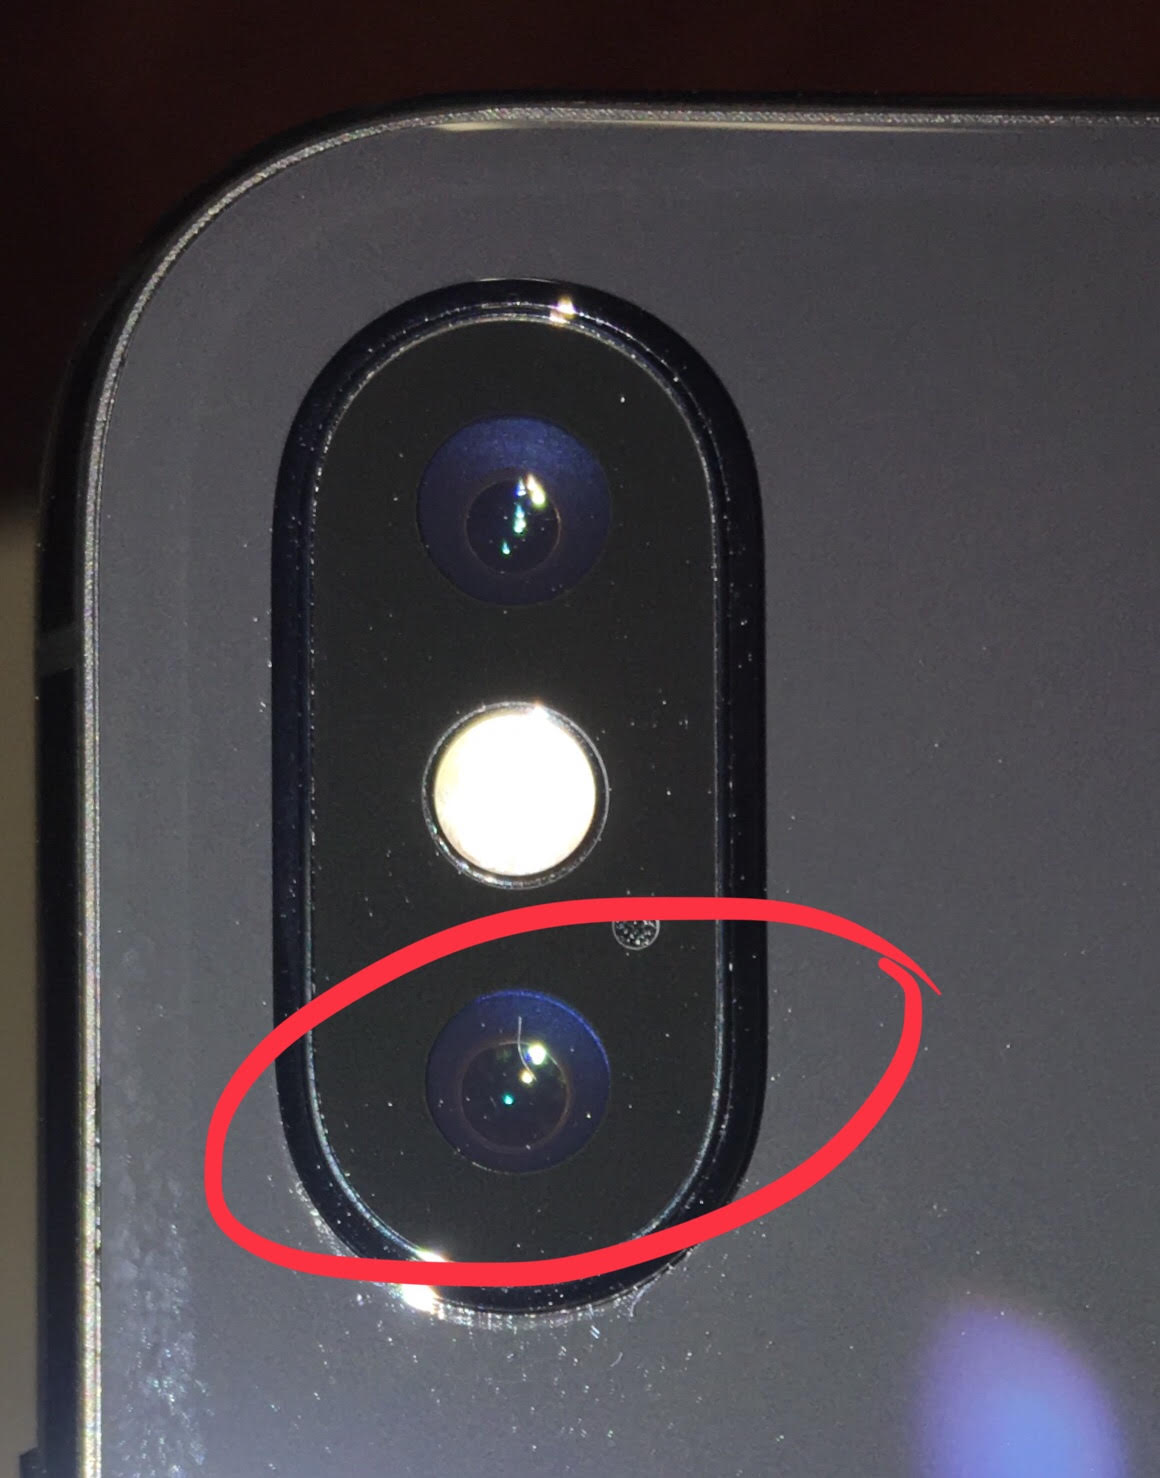 low priced c0f13 ae4f9 iPhone X - freakin' hair on camera lens - iPhone X | MacRumors Forums